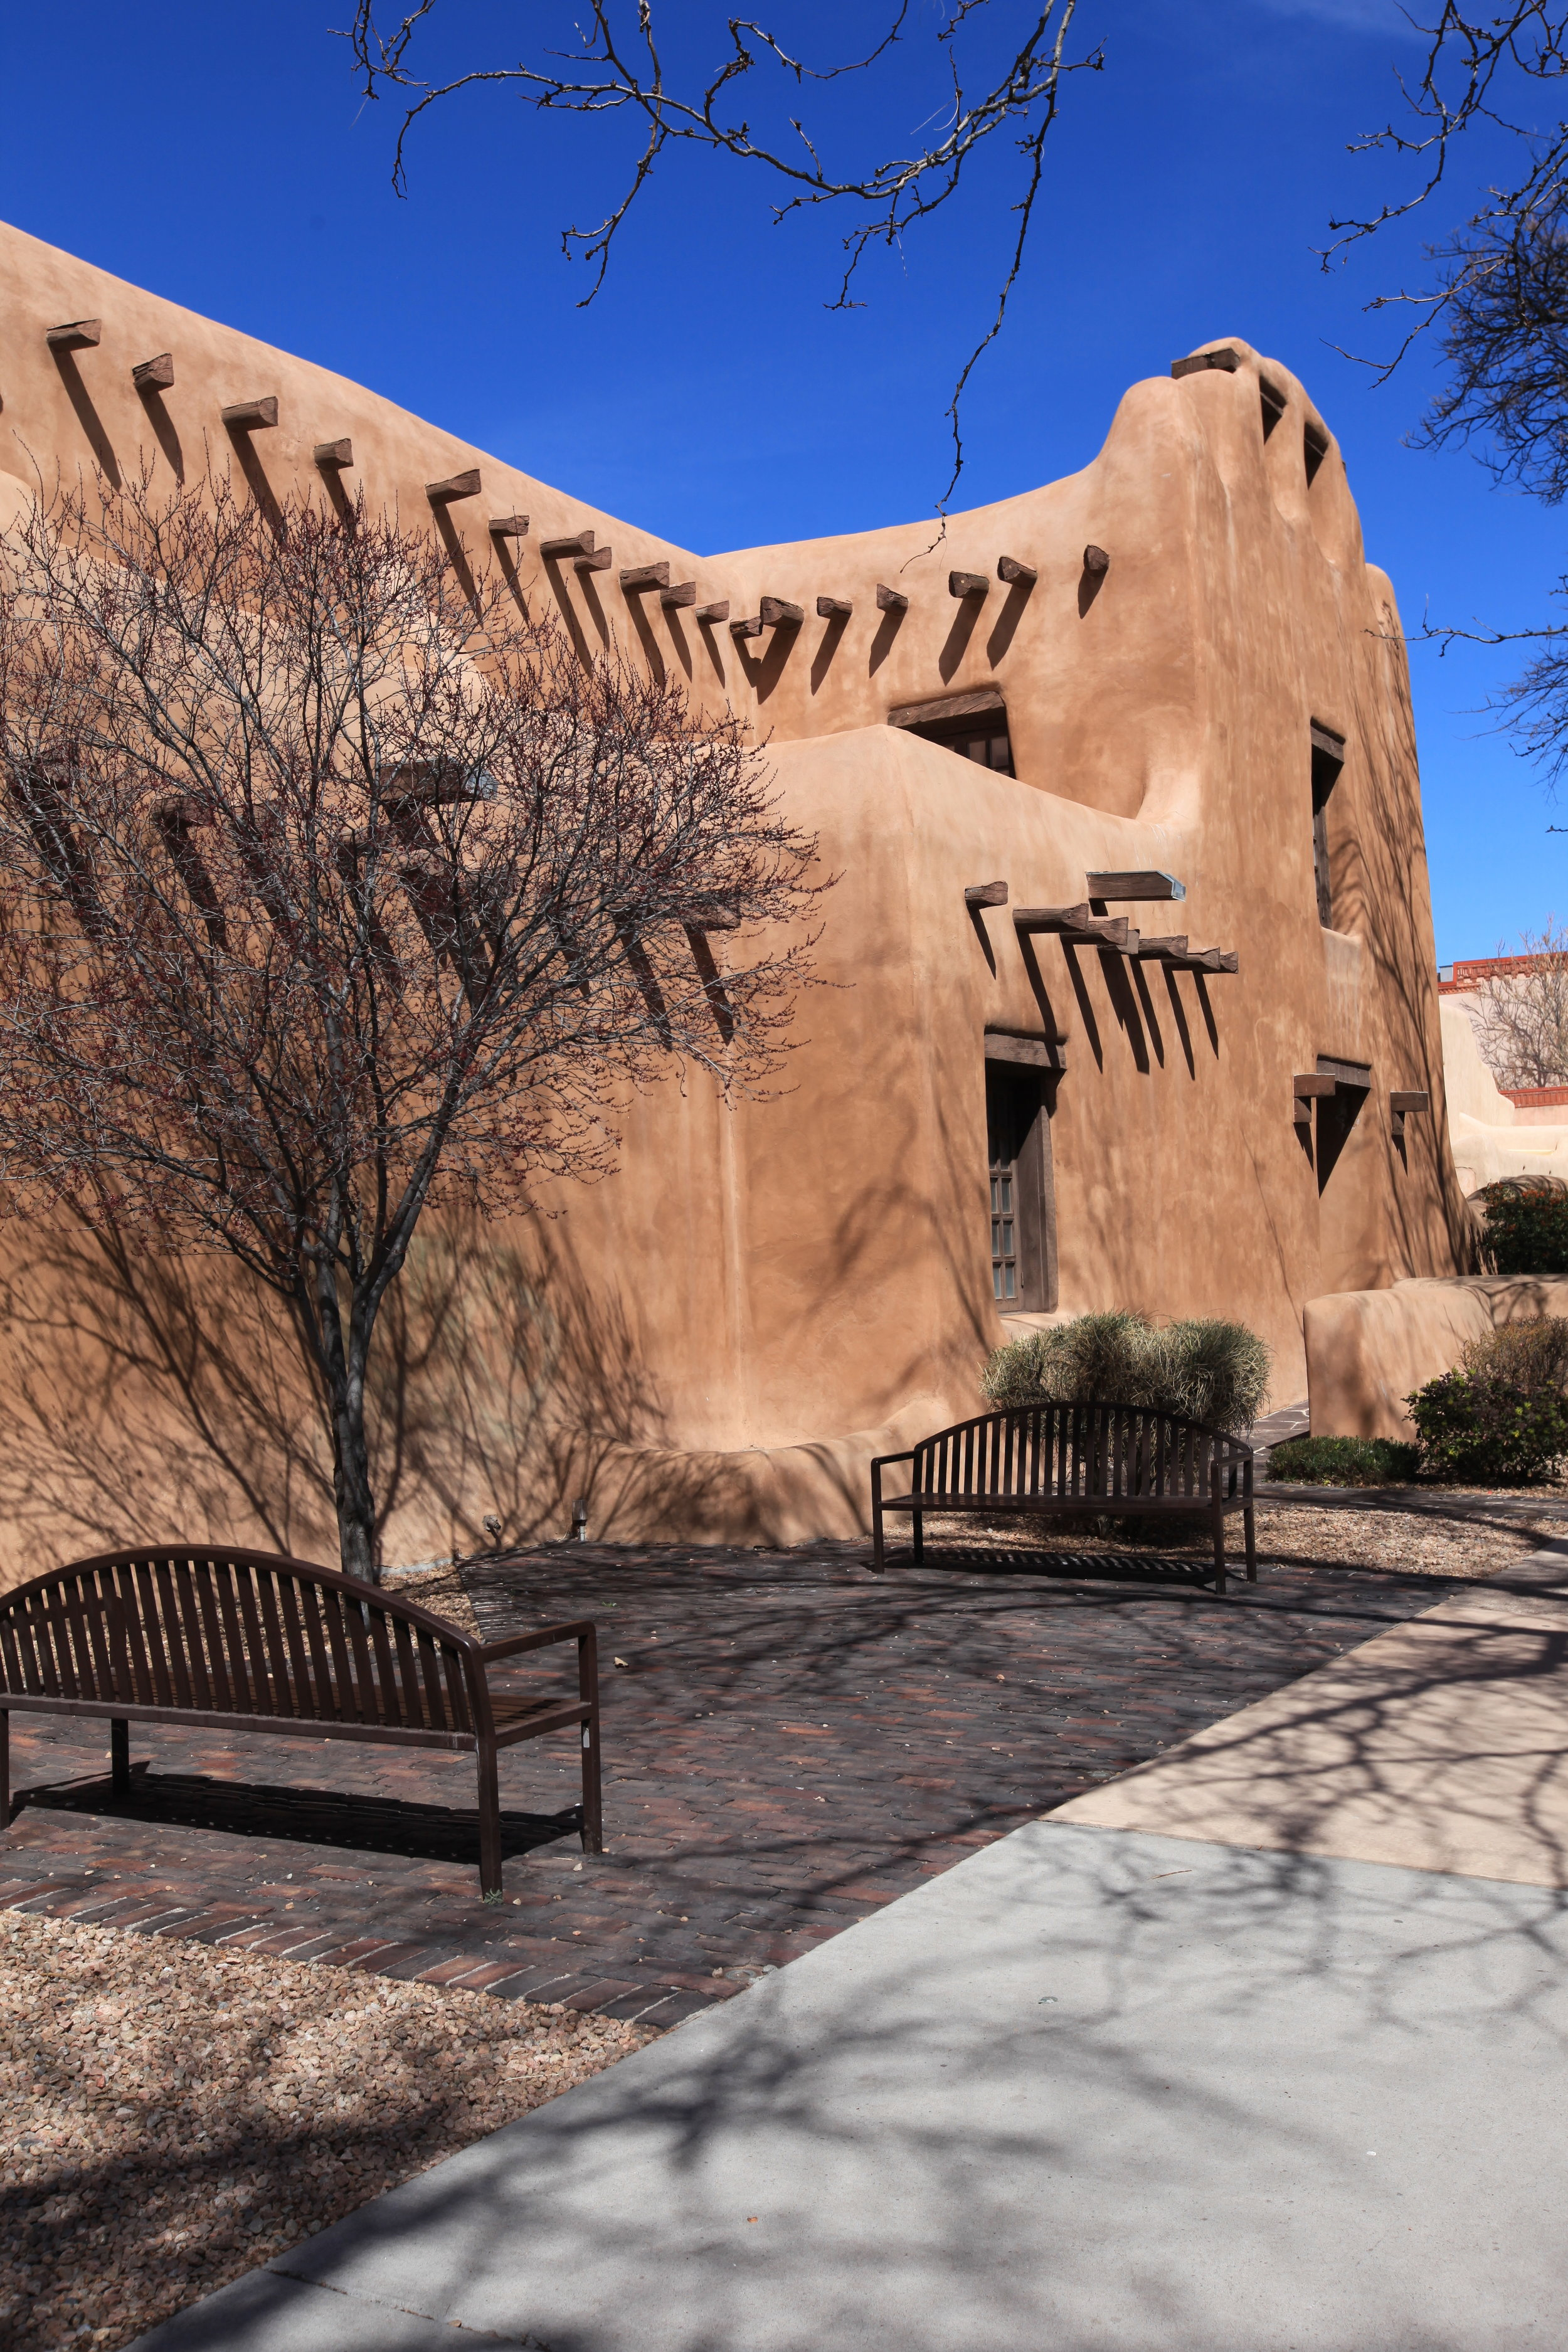 The New Mexico Museum of Art, built in 1915 in the Pueblo Revival style.